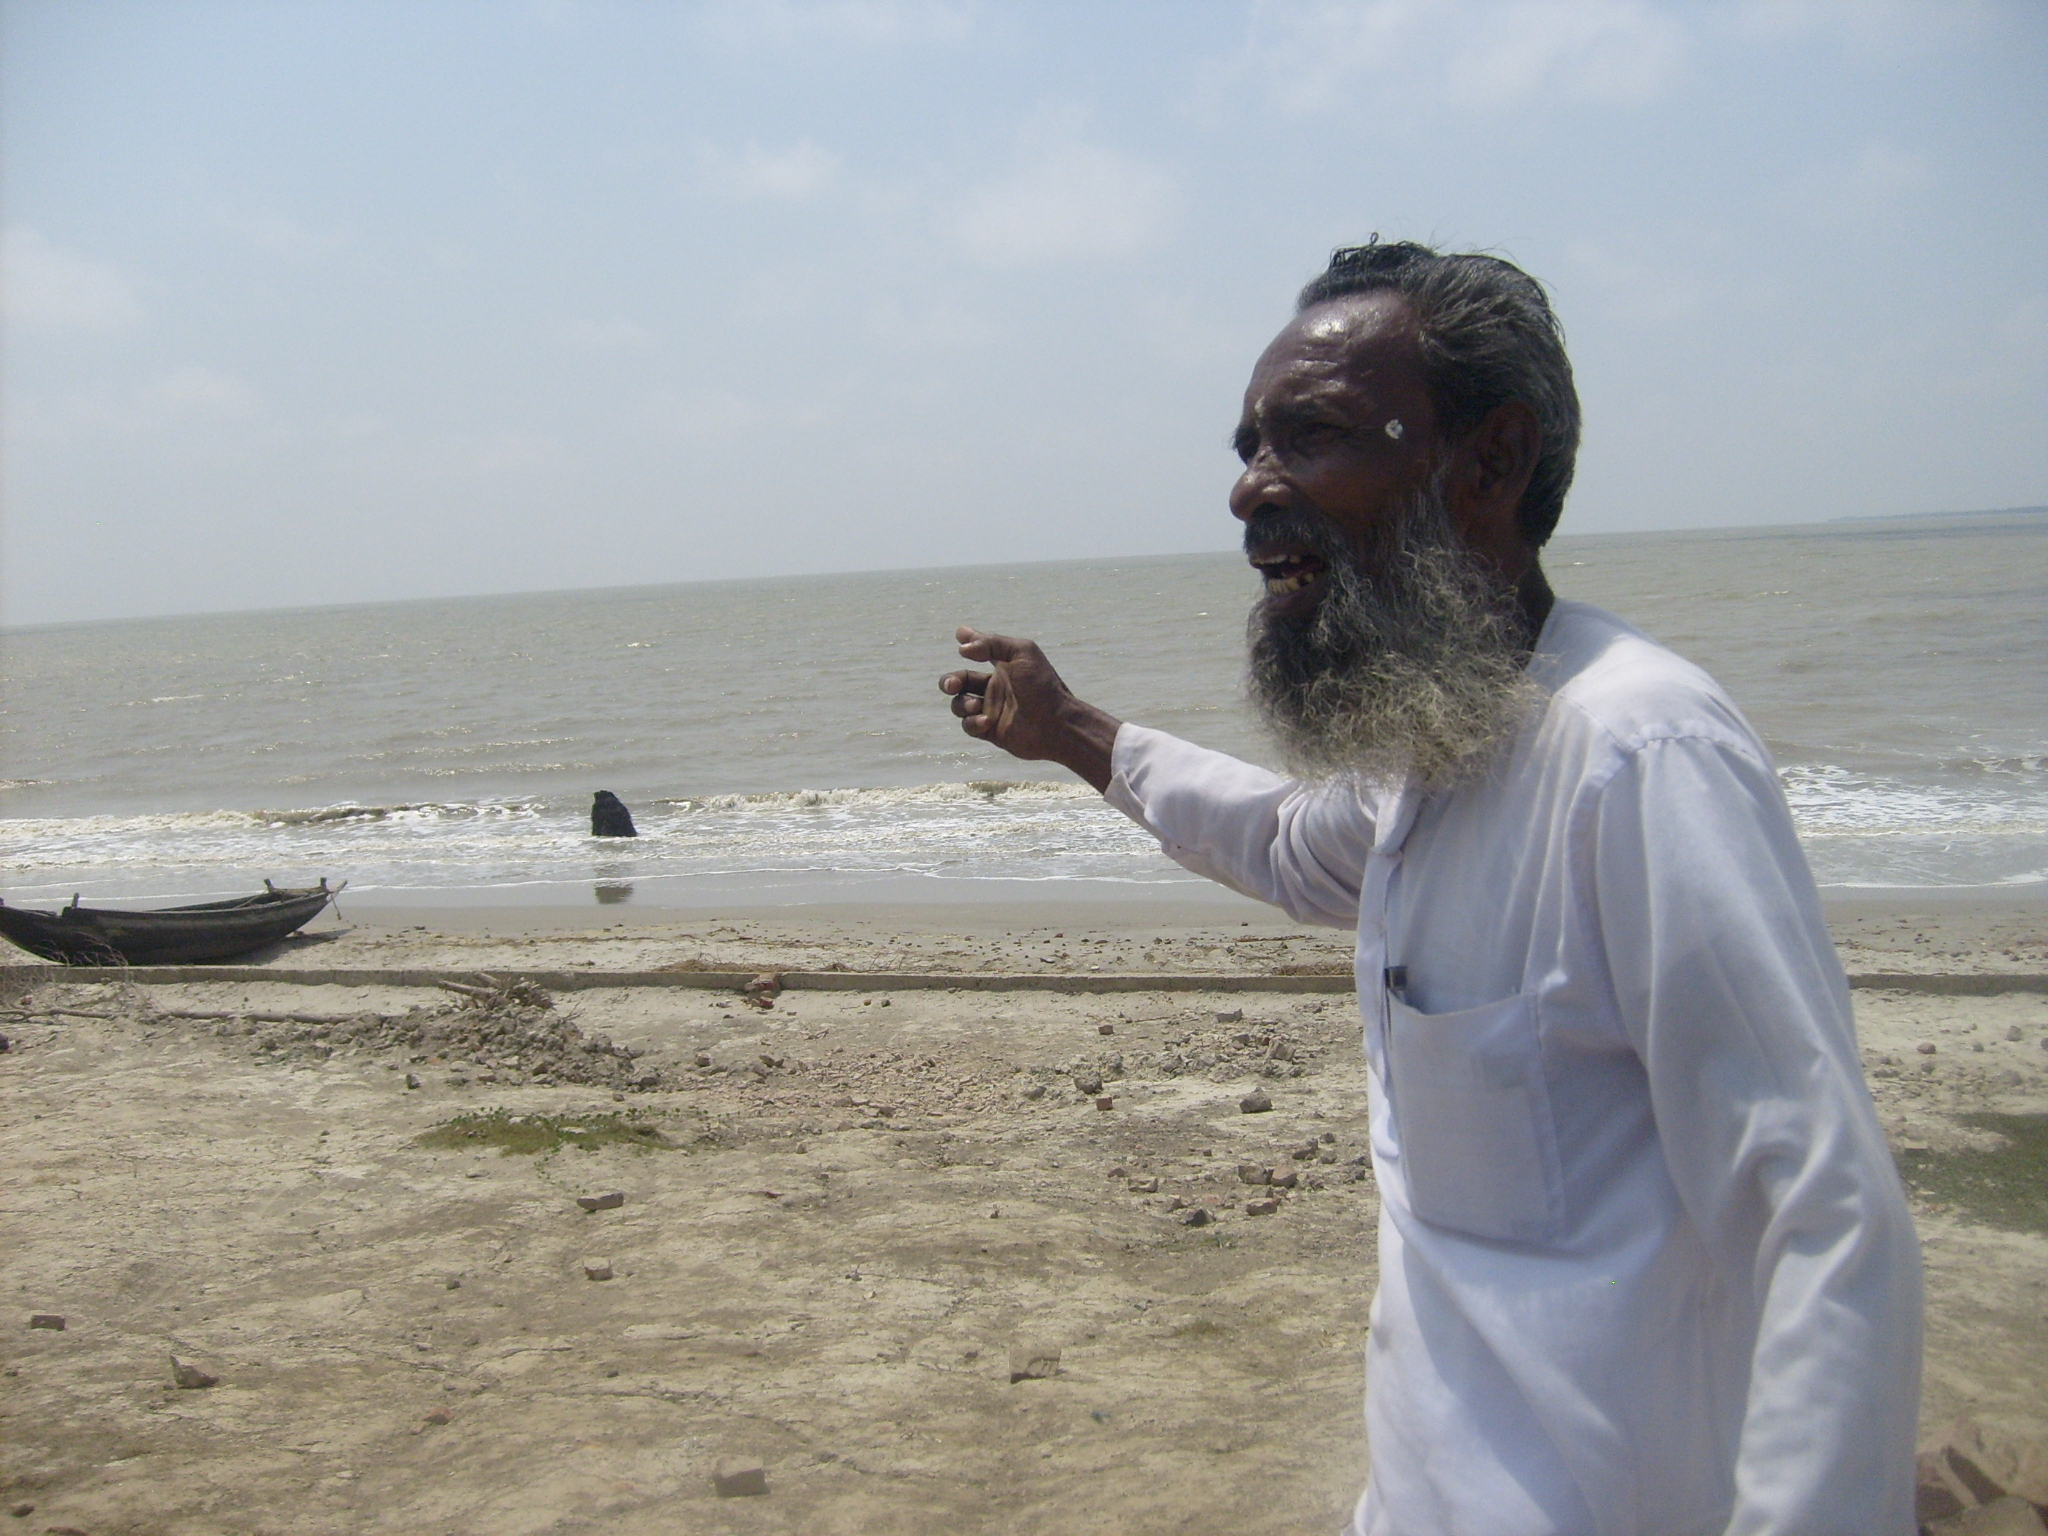 When locals are able to contribute to the narrative and tell their own stories, climate journalism is more accurate and equitable. Here a Bangladeshi man points at where his house used to be before the rising seawater washed it away. (Photo: © Internews)